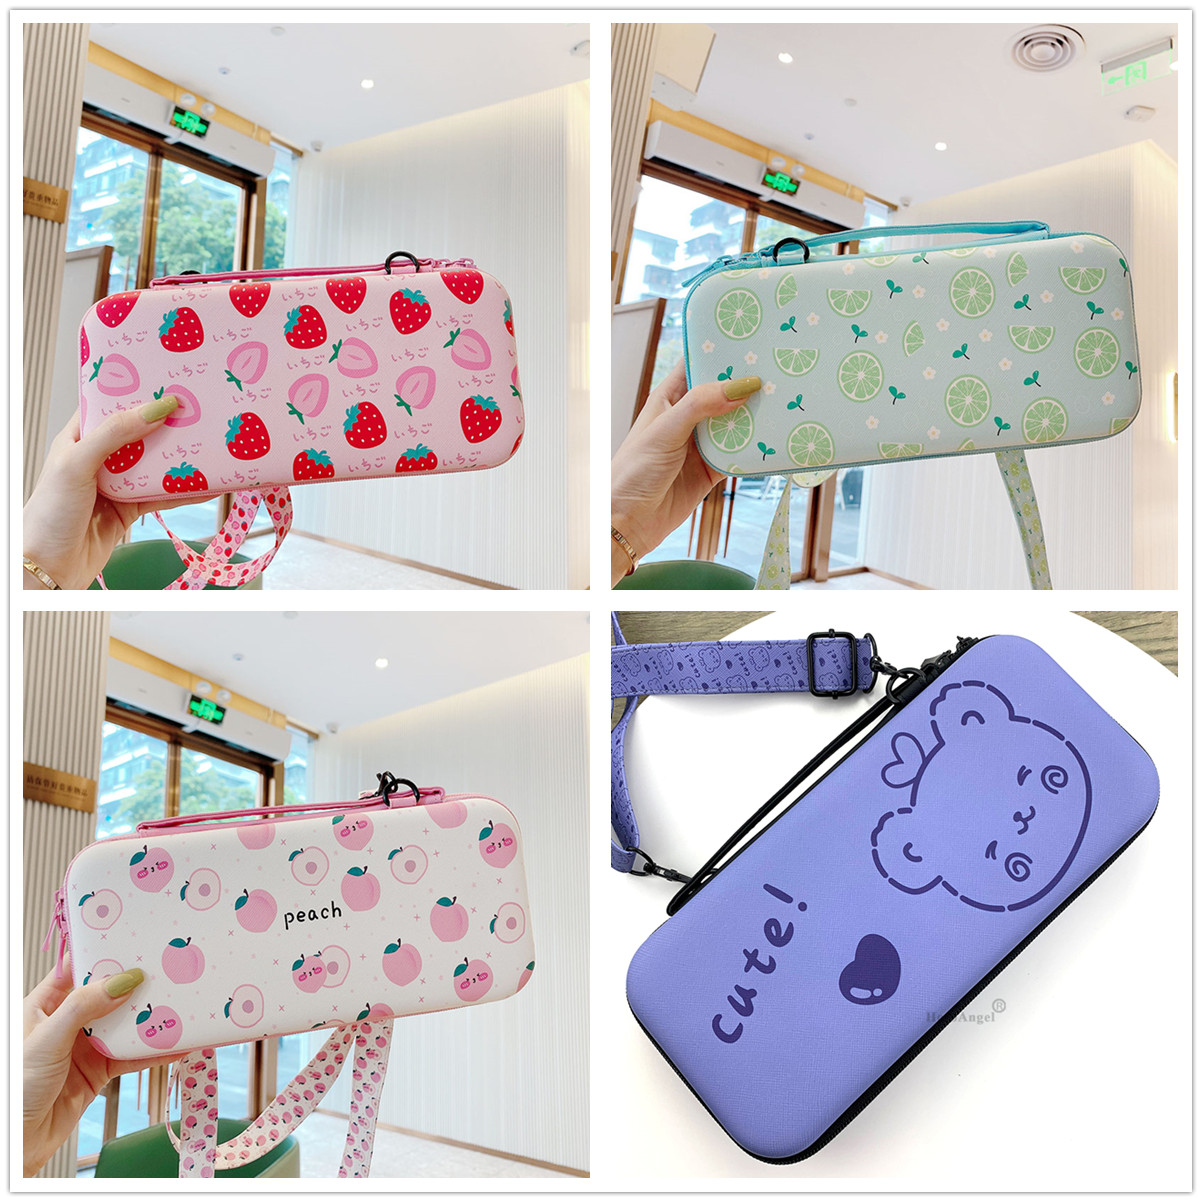 Cute Girls Storage Bag 12cm*26cm*5cm Protective Carrying Portable Case for Nintendo Switch Game Accessori with Adjusted Lanyard